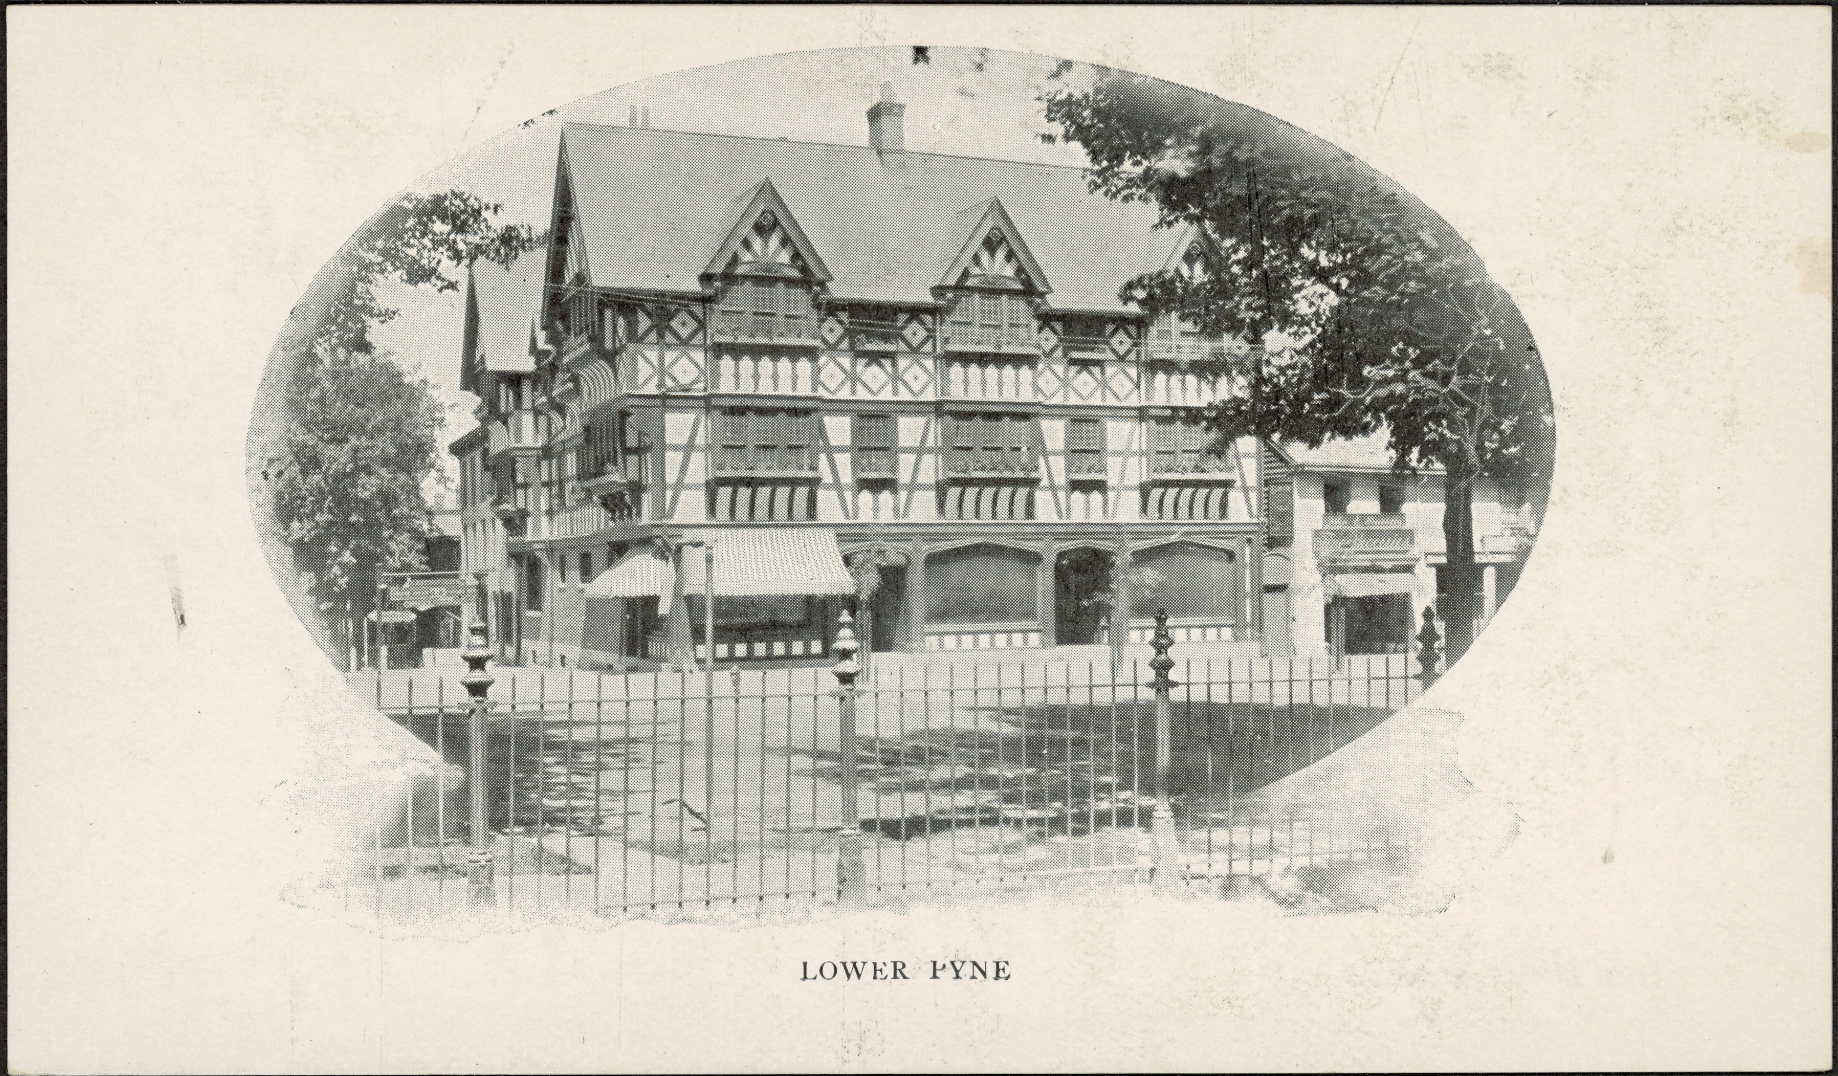 Lower Pyne Download